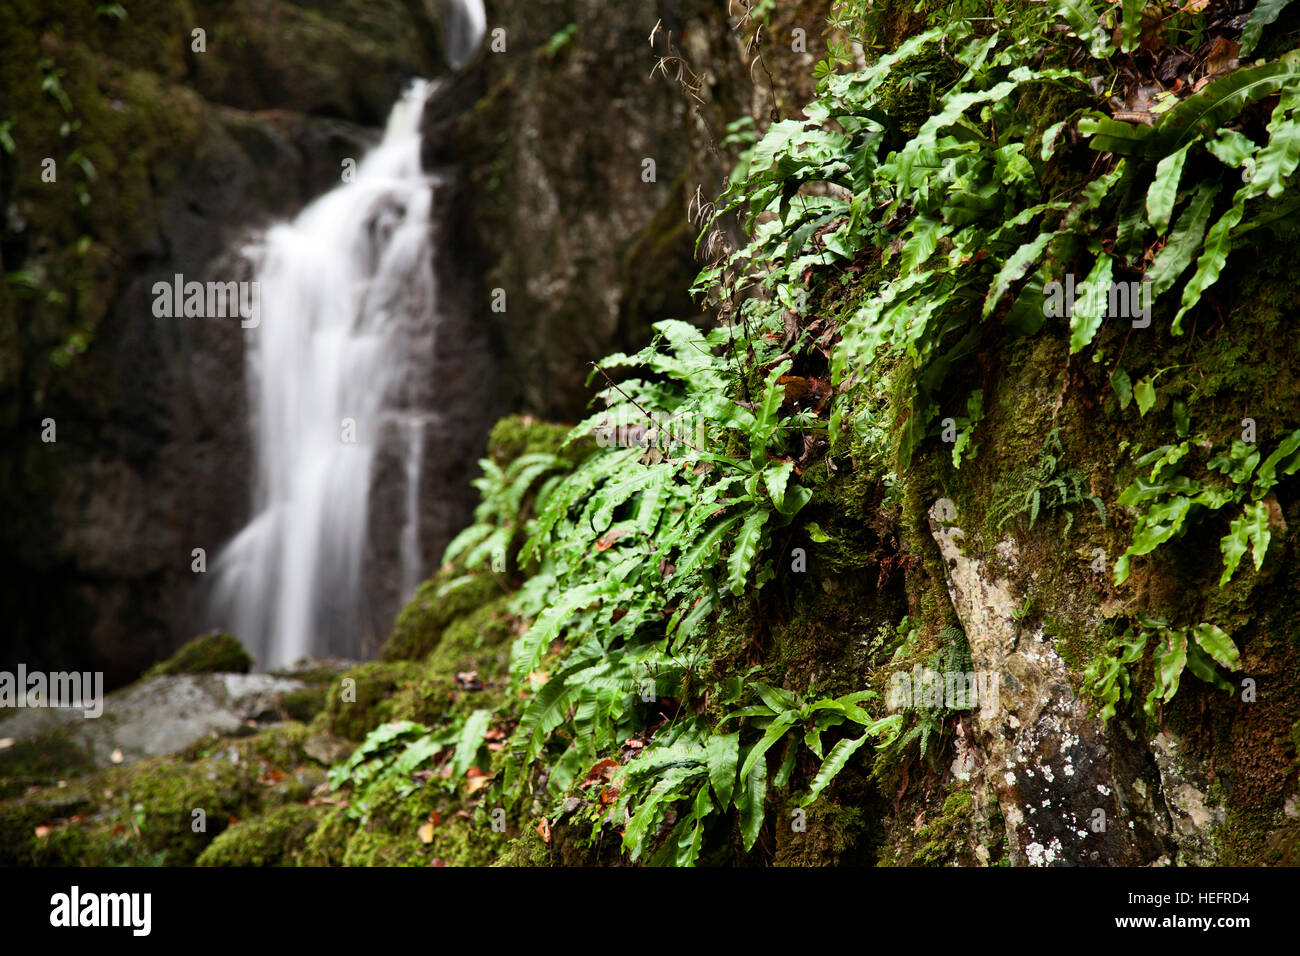 Catrigg Force Waterfall at Stainforth, near Settle, Yorkshire Dales - Stock Image